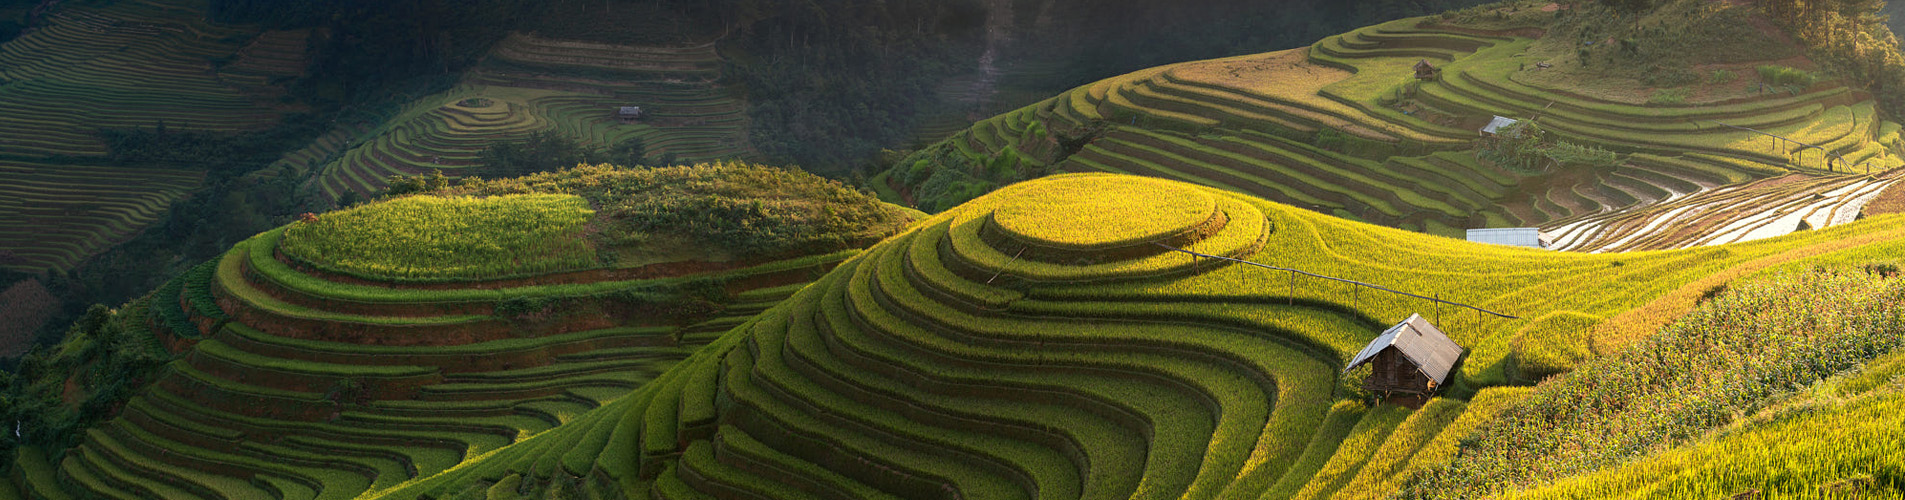 Come to see the amazing Vietnam rice terrace this September